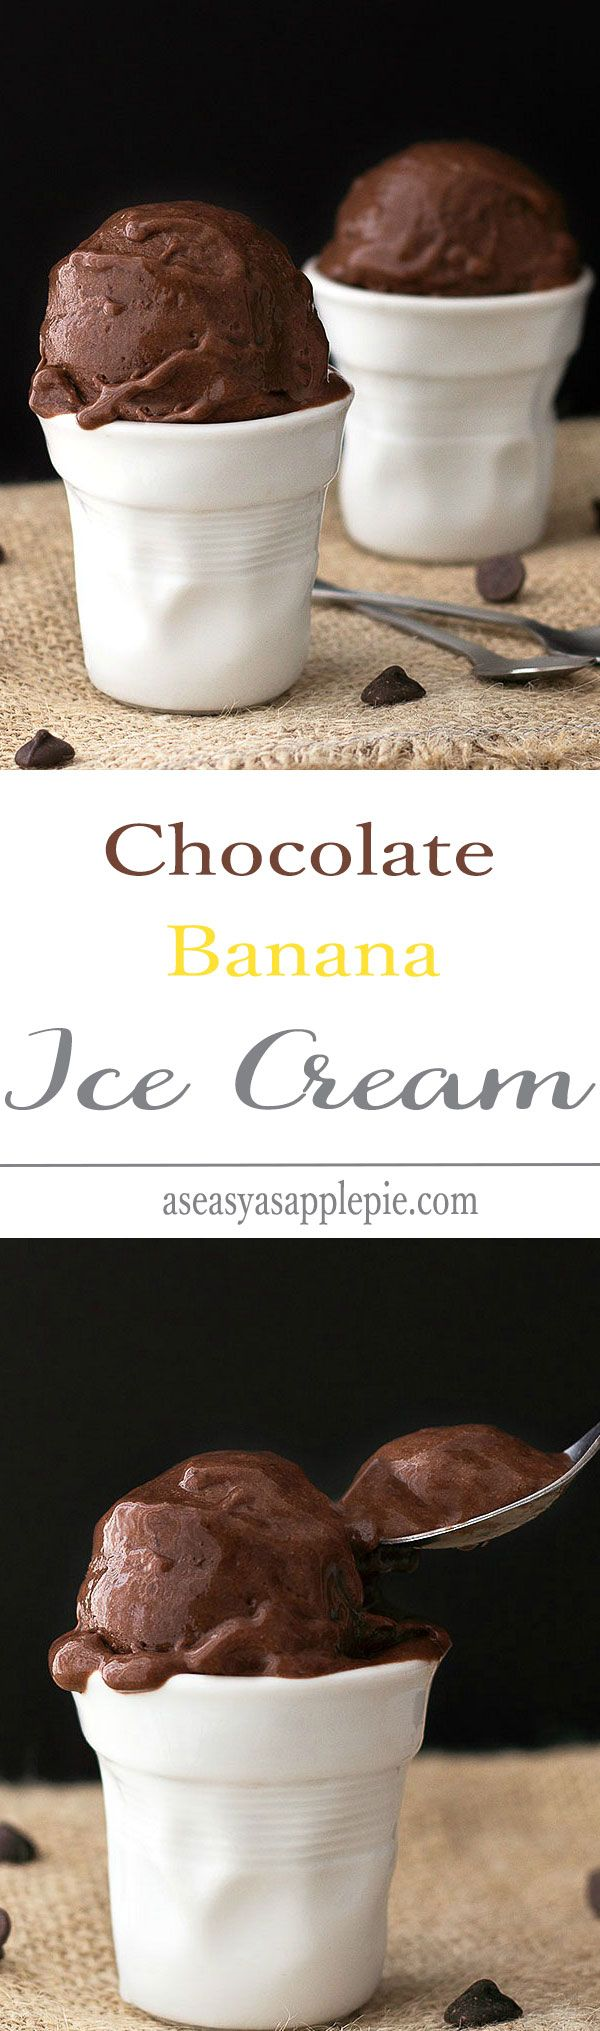 Chocolate Banana Ice Cream - just two ingredients and a blender needed to make this healthy creamy treat. No Cream, No Sugar, NO GUILT!